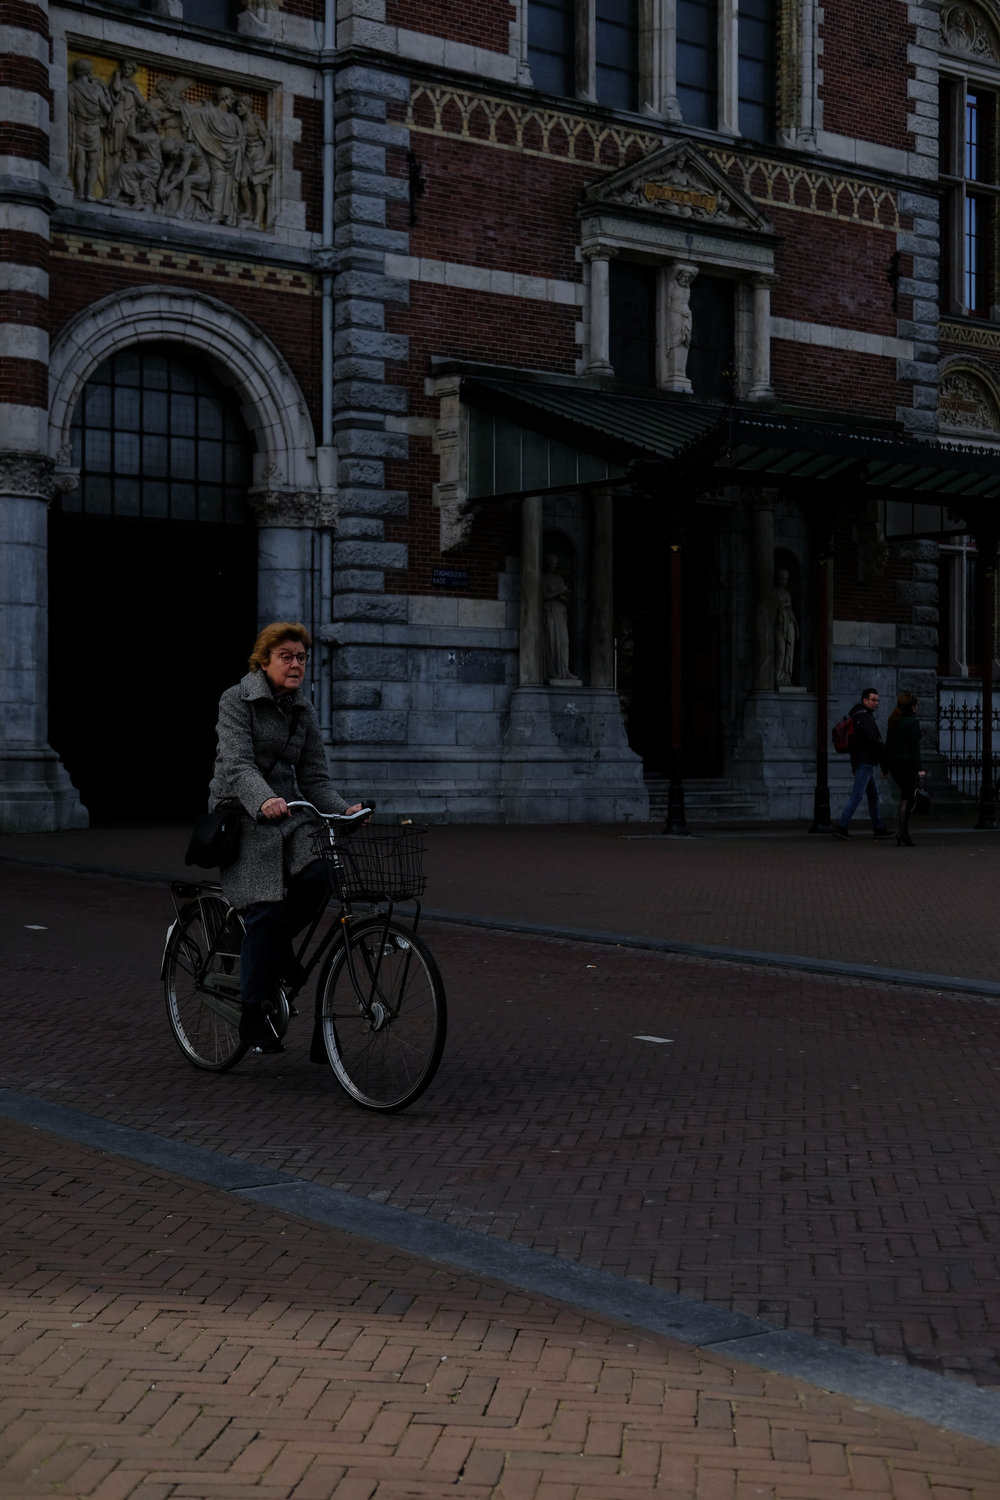 "<p style=""font-family:brandon-grotesque;font-weight:500; font-size:11px; text-center:left; color:light grey;letter-spacing: 1px"">MARCH 25, 2017 • BIKER • 📍 Amsterdam, Netherlands</p>"